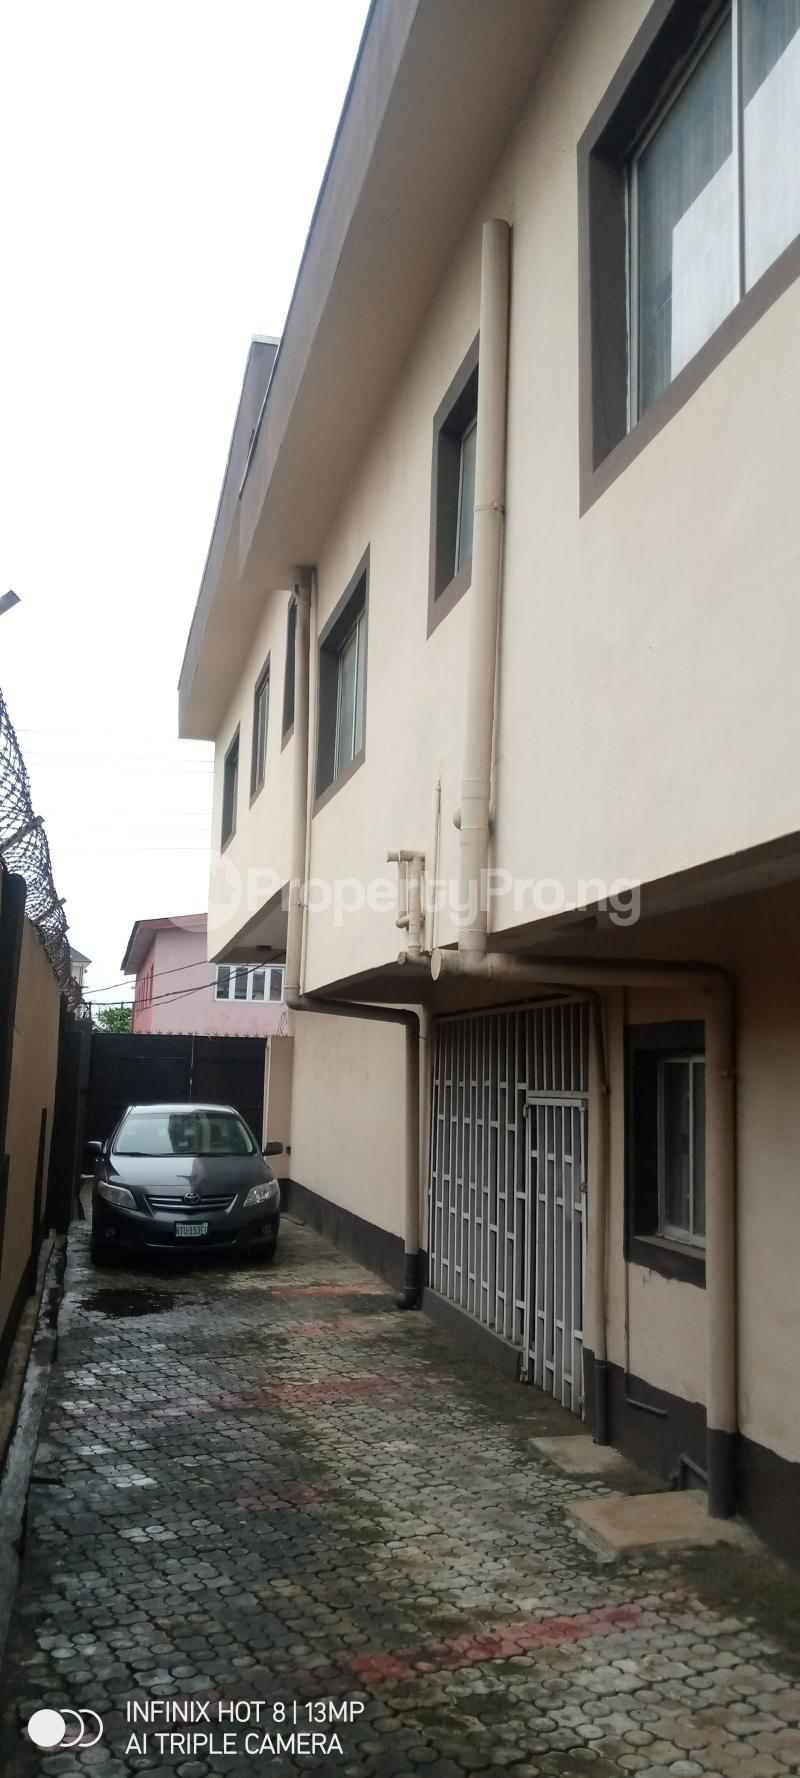 5 bedroom Detached Duplex House for sale Ago palace way Isolo Lagos - 3